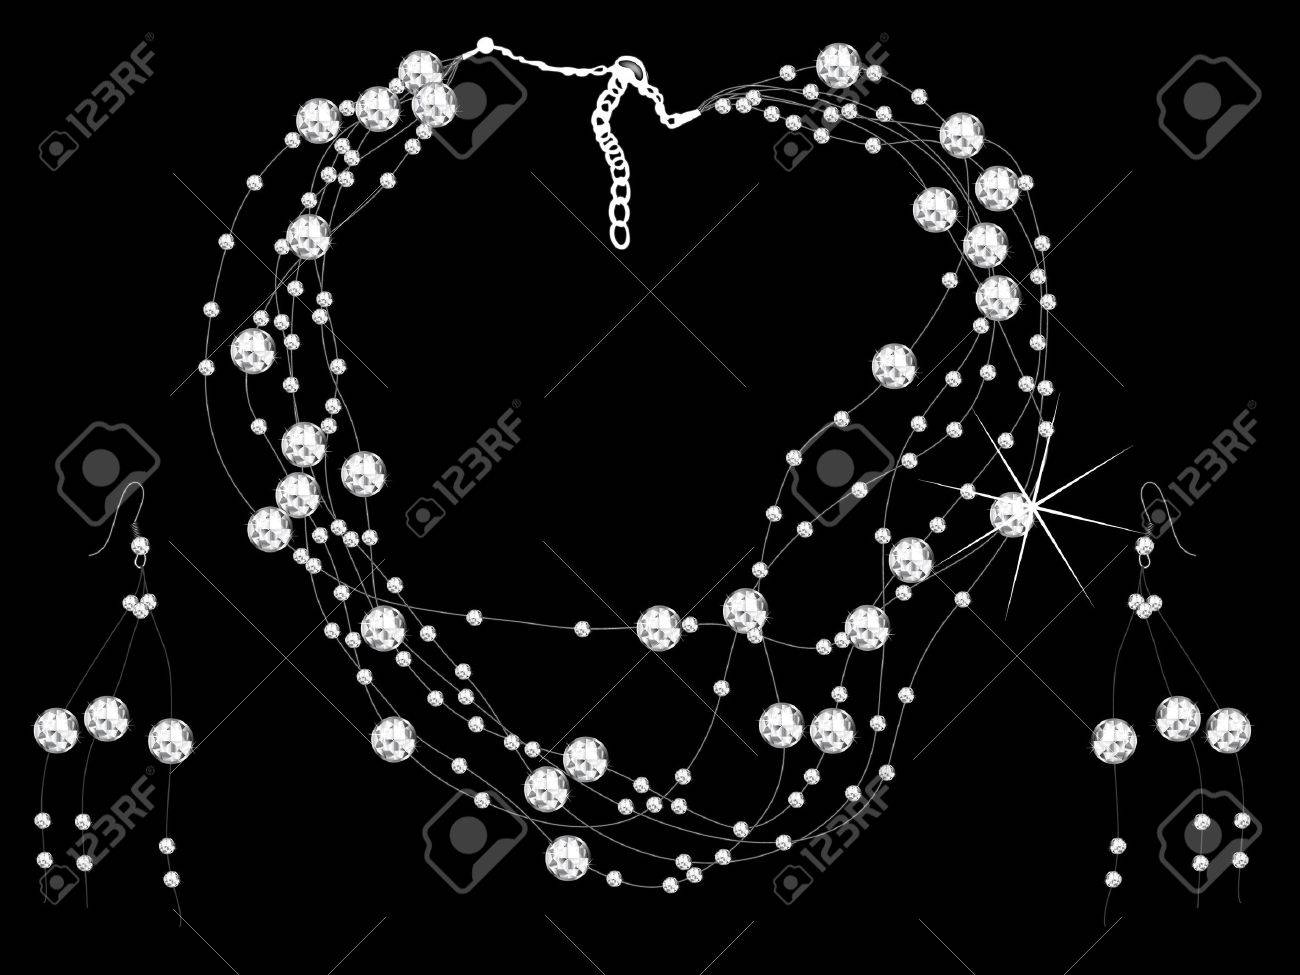 Diamond necklace and earrings - vector illustration Stock Vector - 6536651